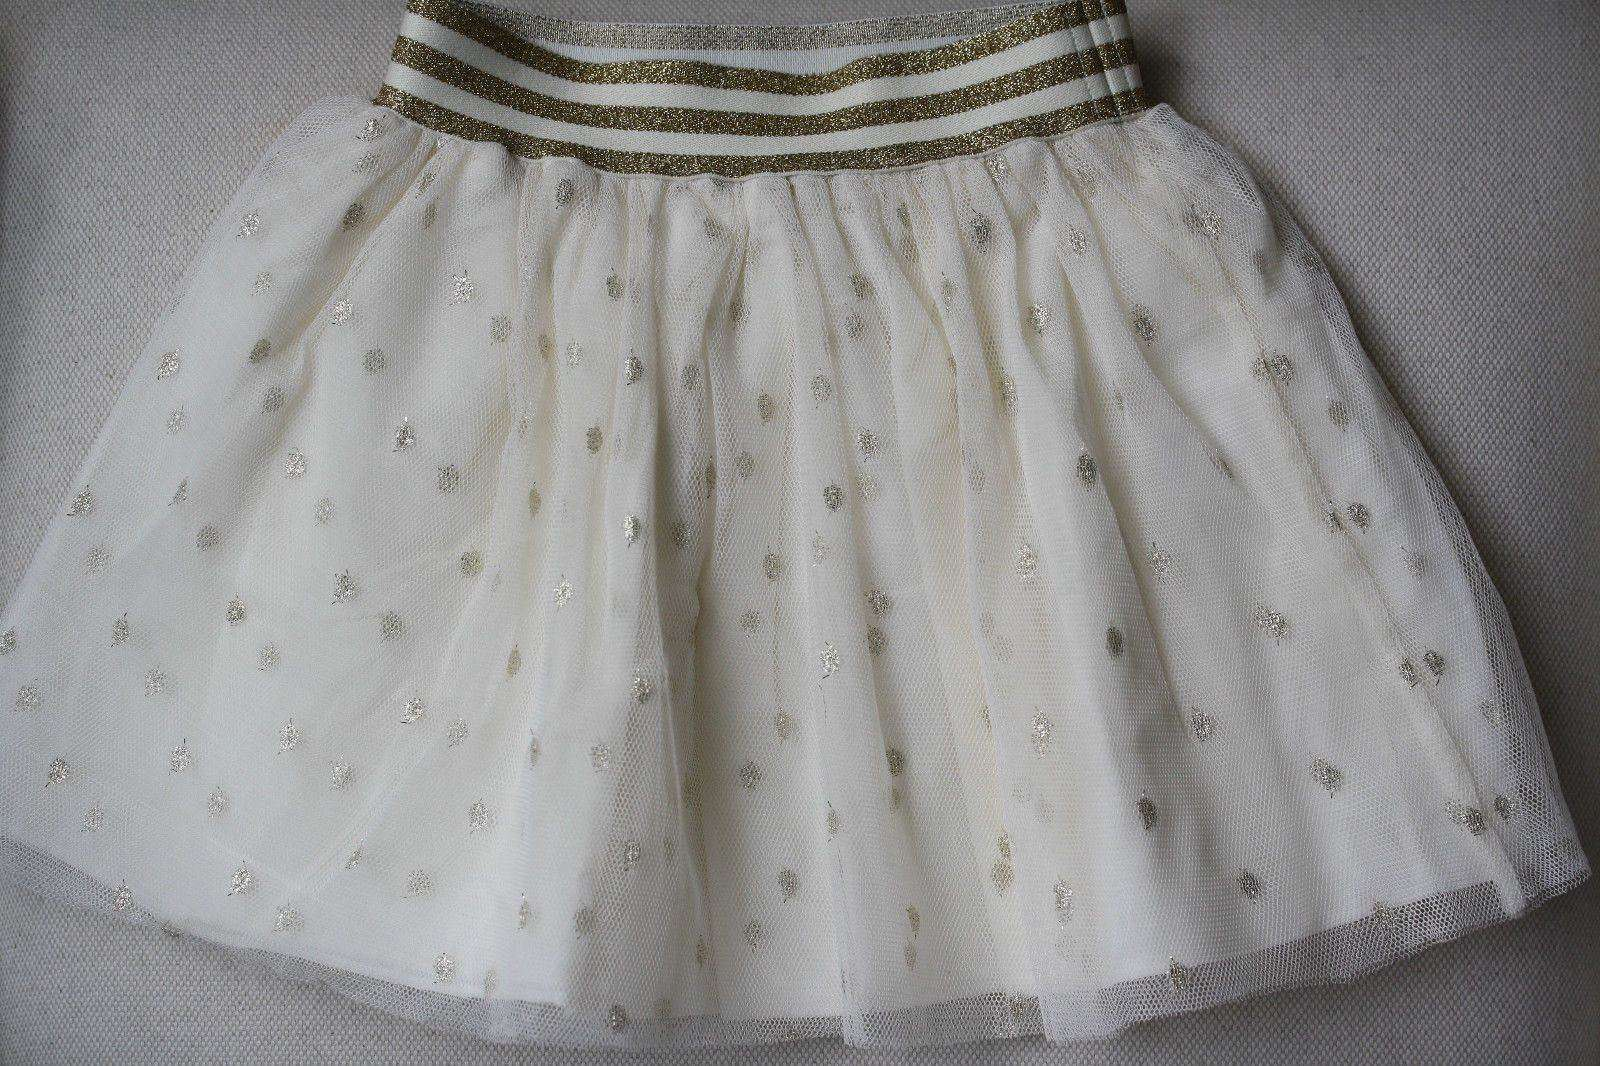 MARIE CHANTAL BABY GOLD POLKA DOT TUTU 24 MONTHS